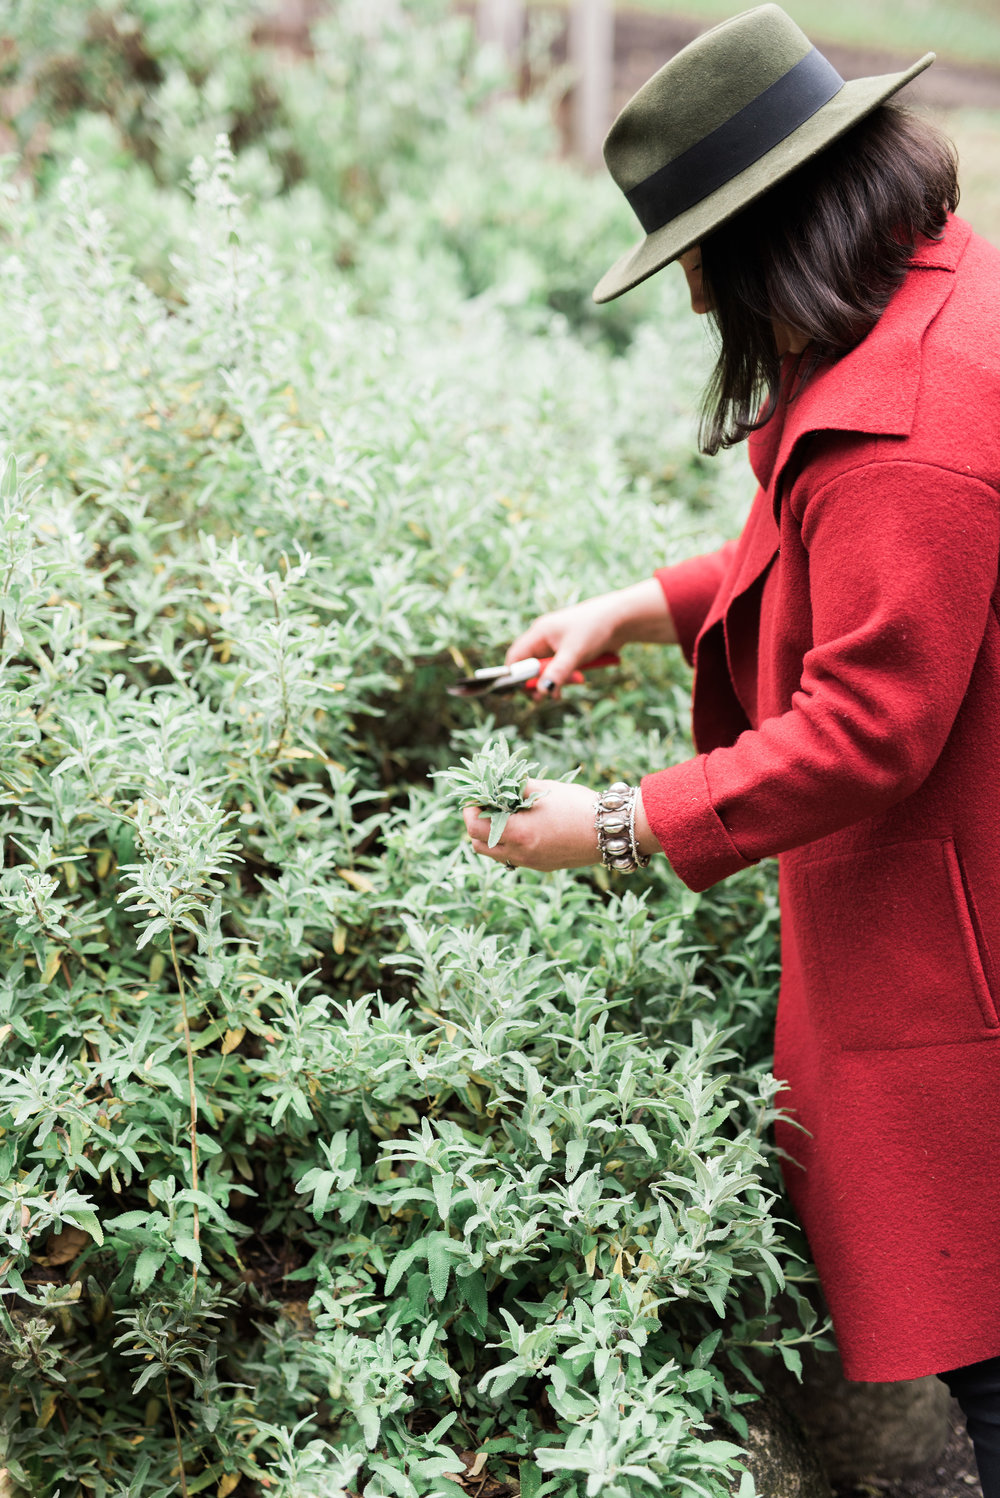 Harvesting sage from our native plant garden. Photo by  Angela Nunnink Photography